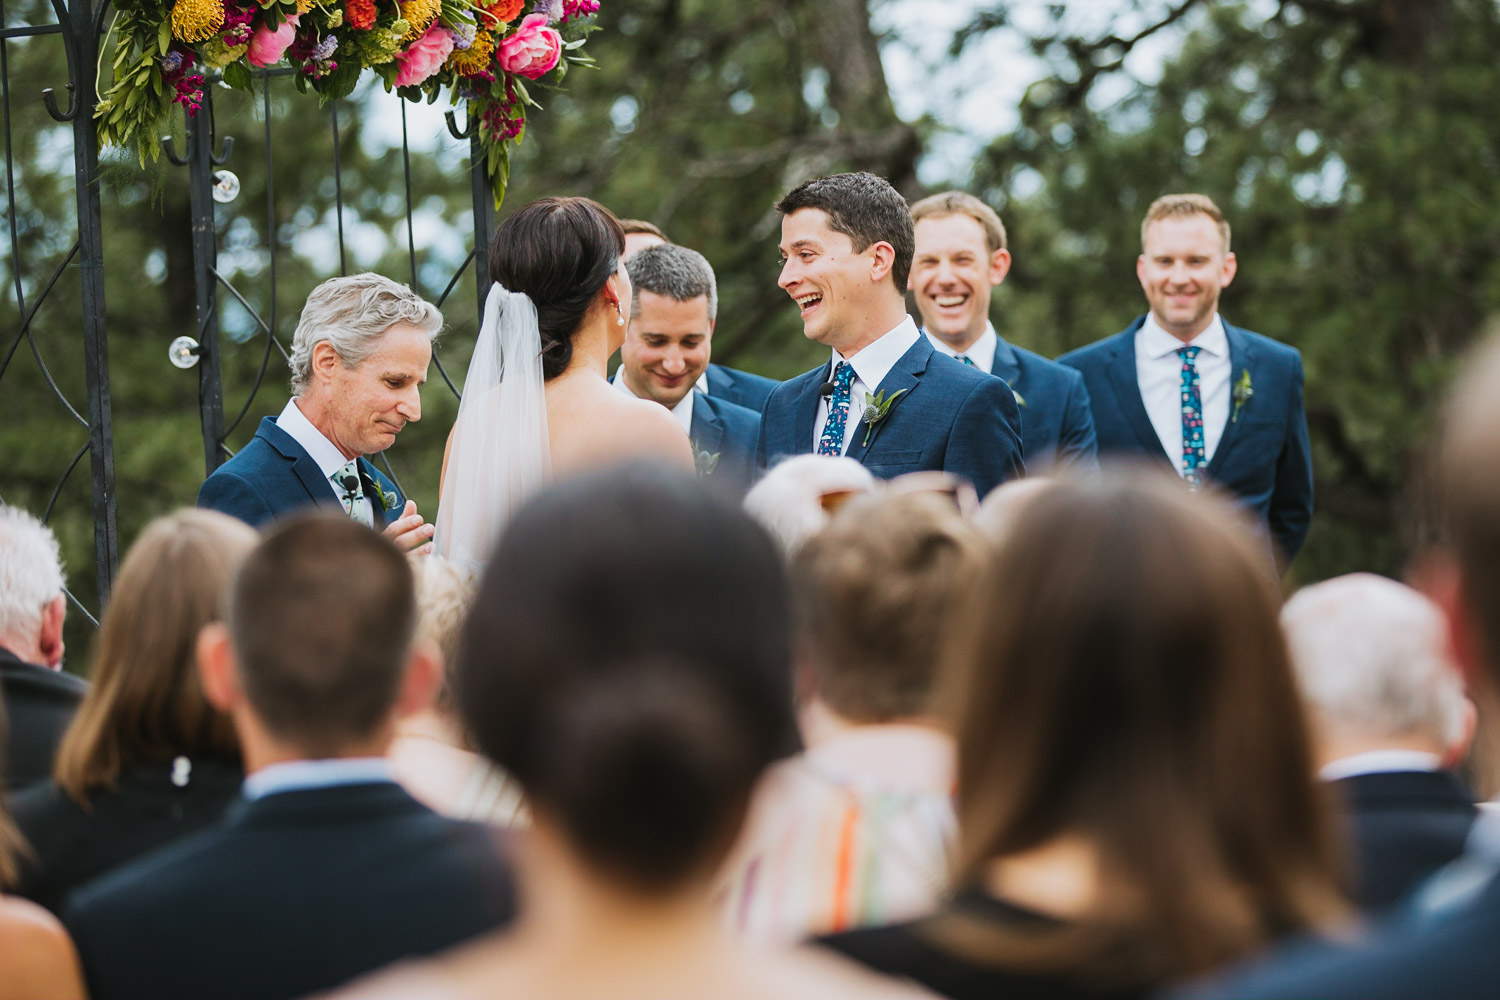 Groom Laughs During Wedding Ceremony